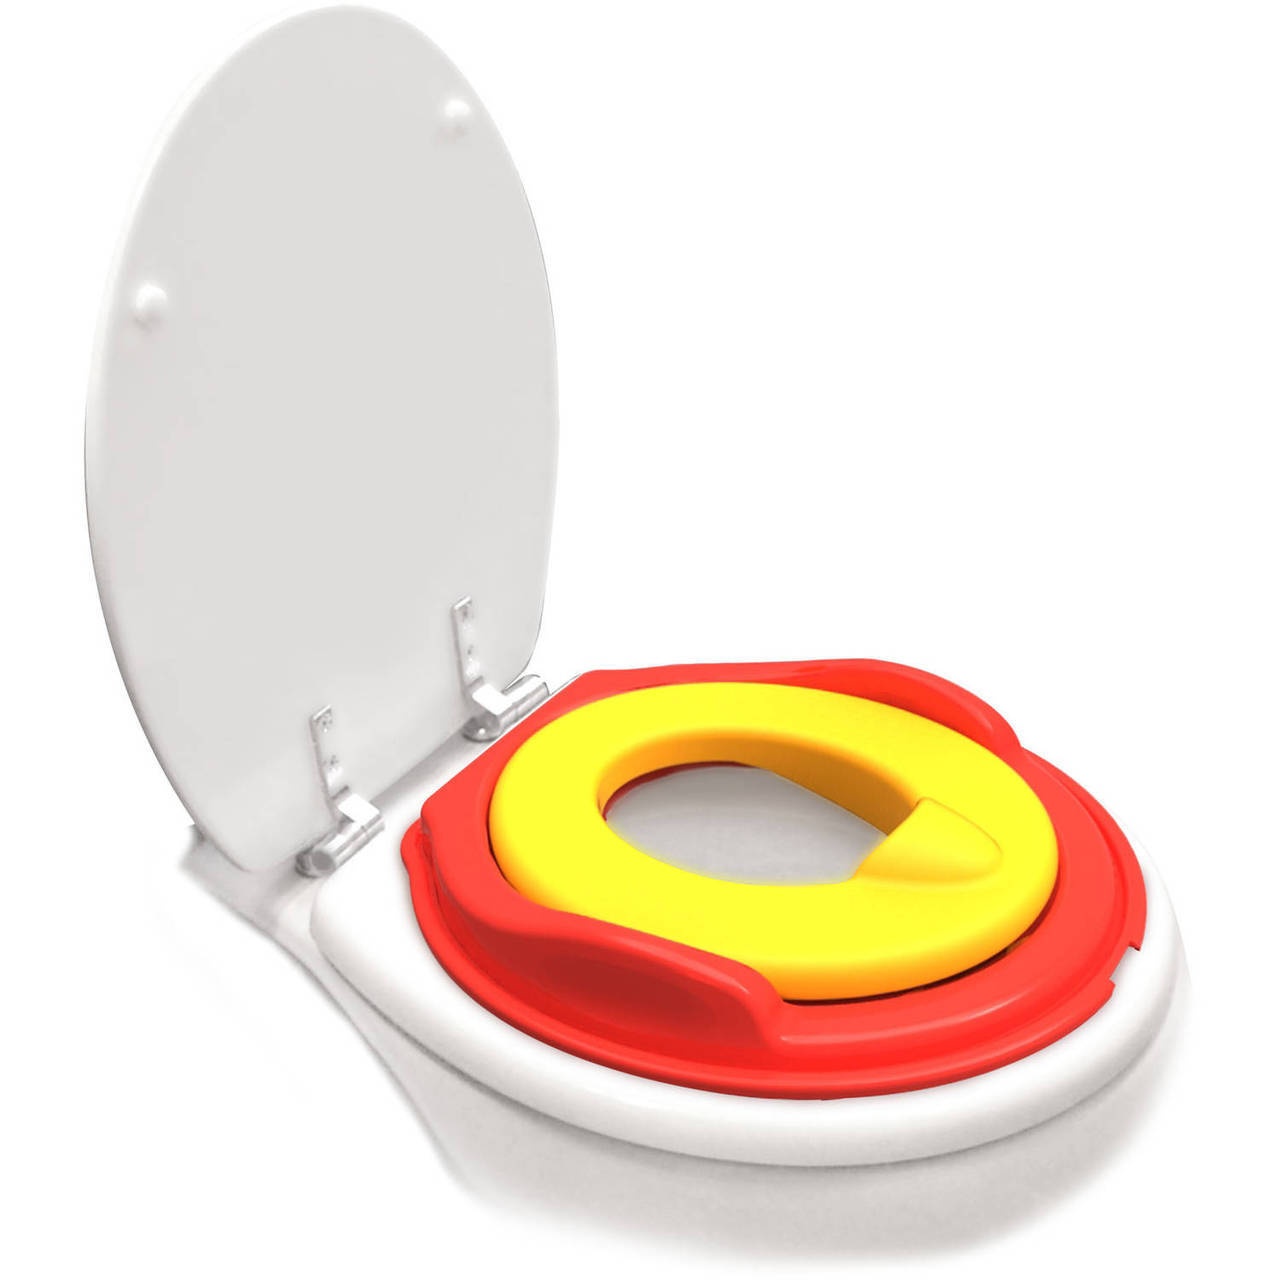 The First Years 3-In-1 Potty System